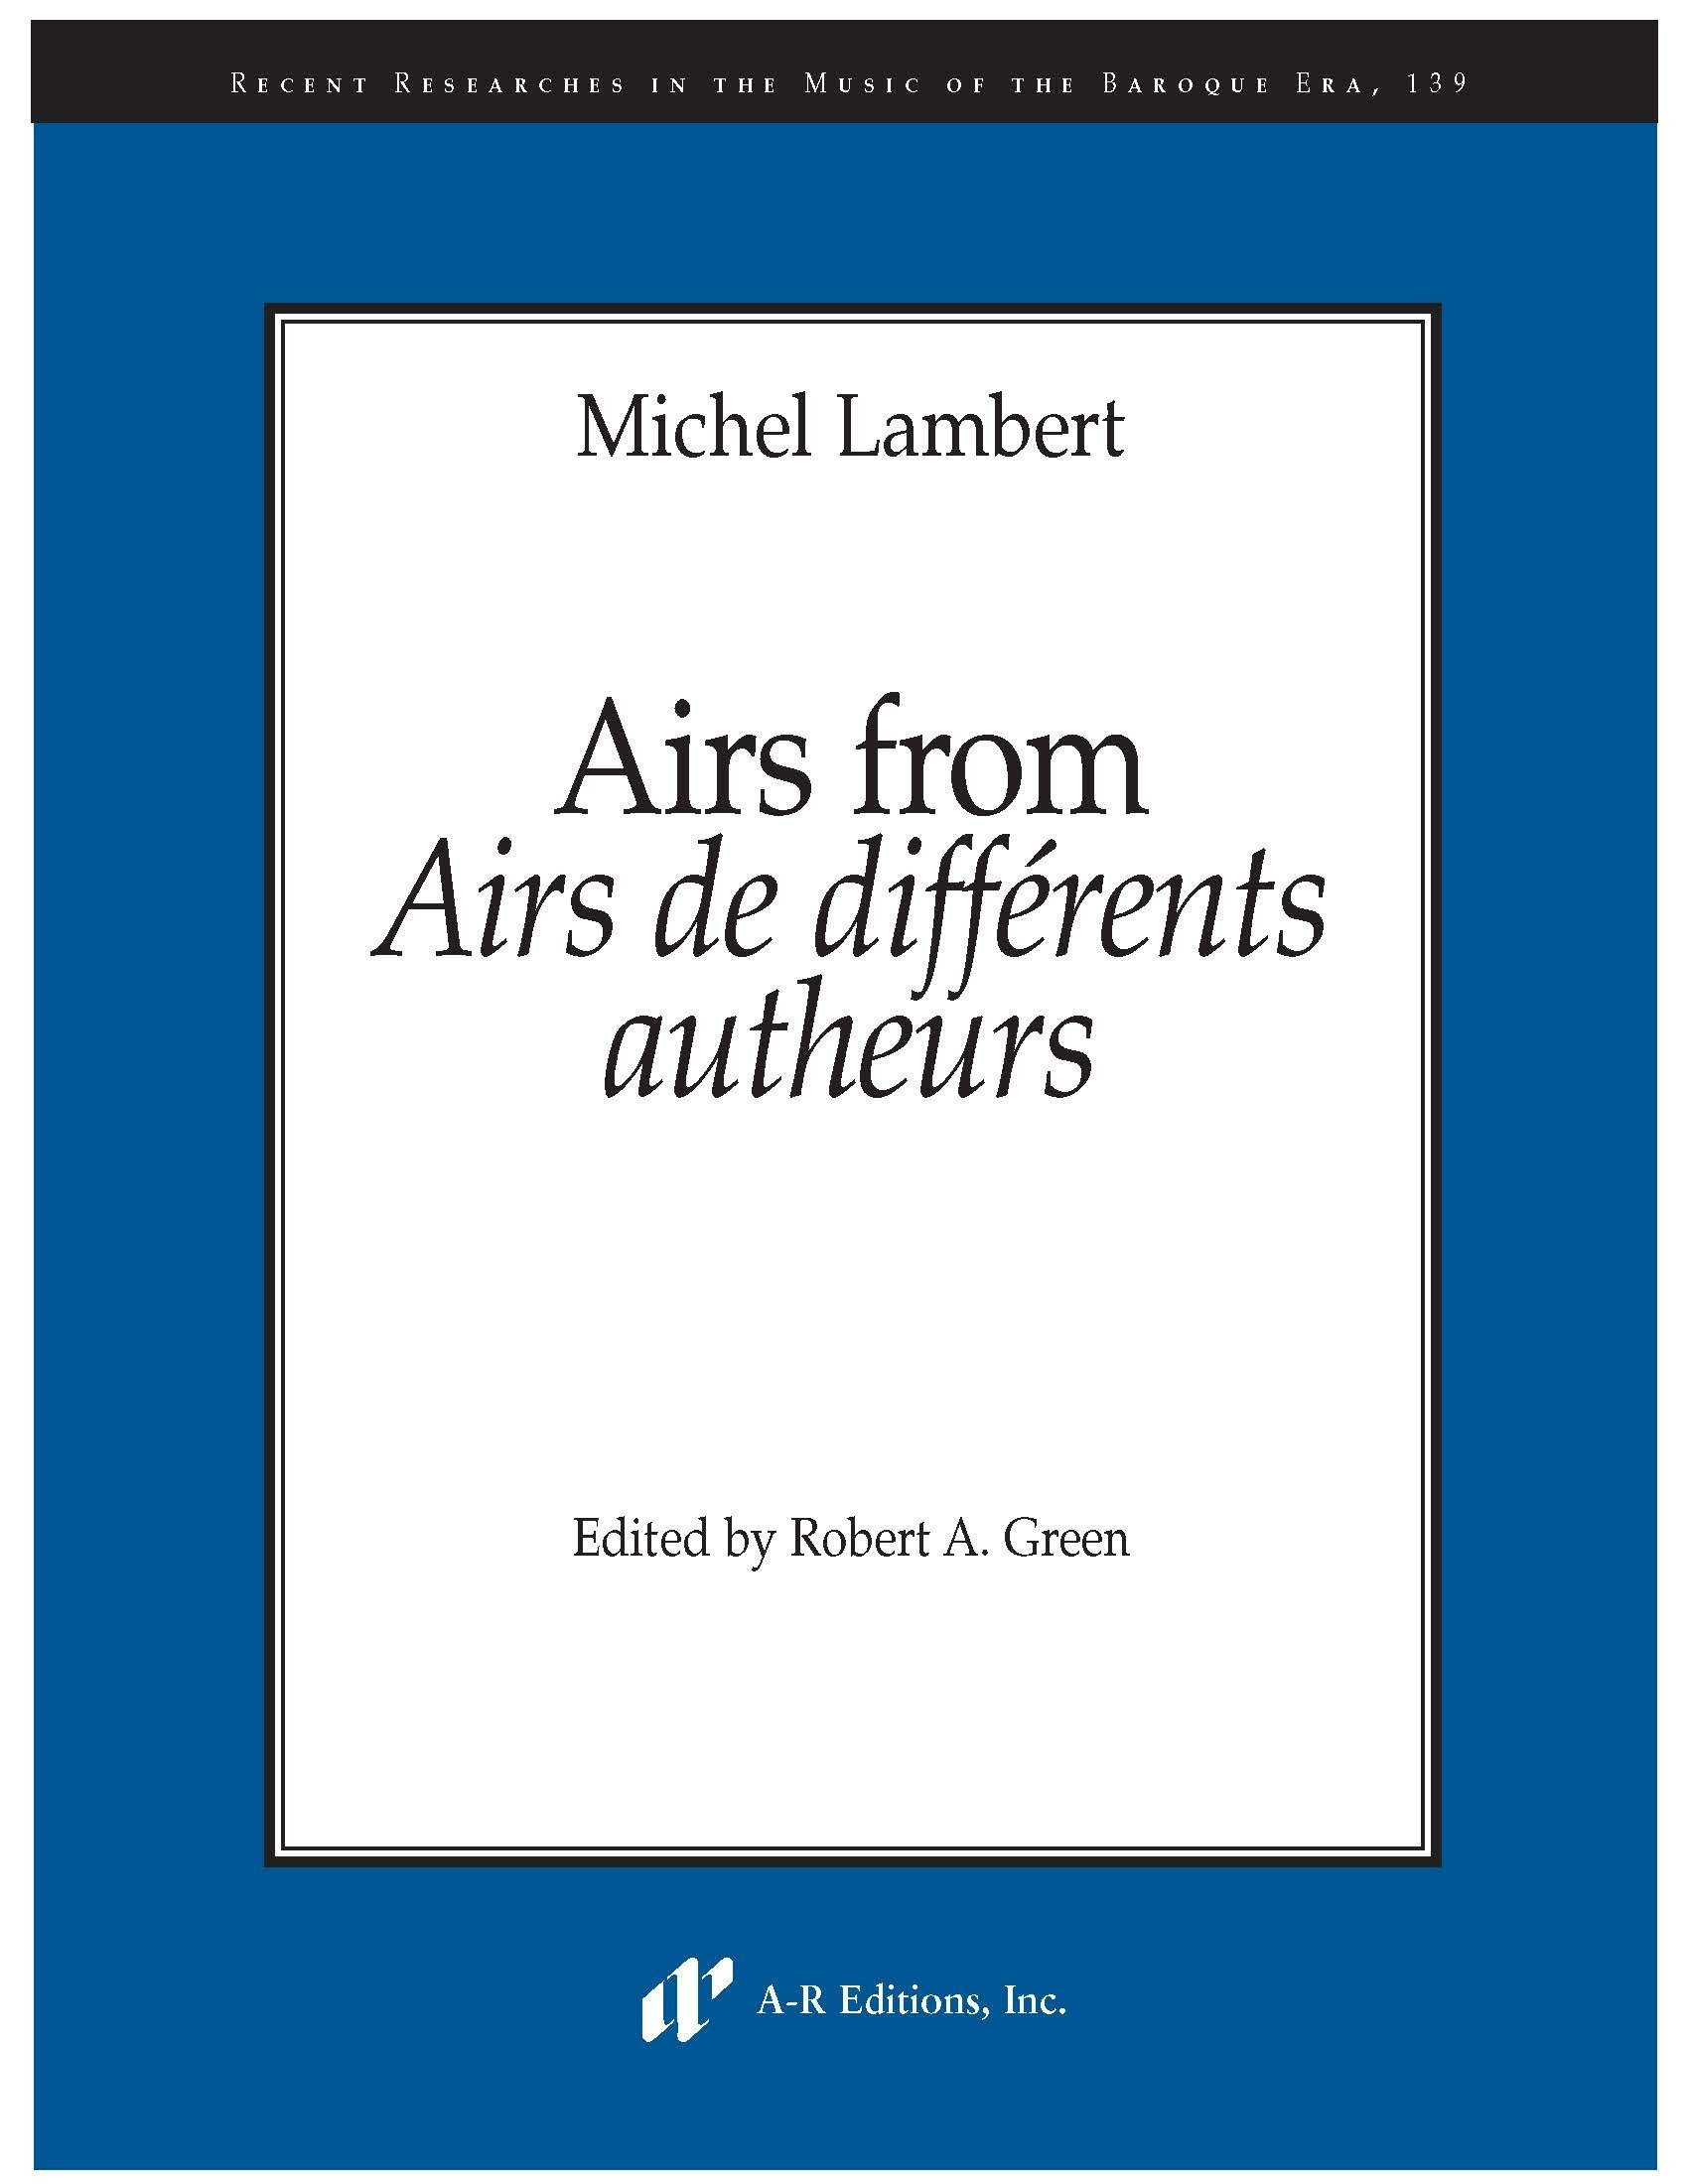 Lambert: Airs from Airs de différents autheurs